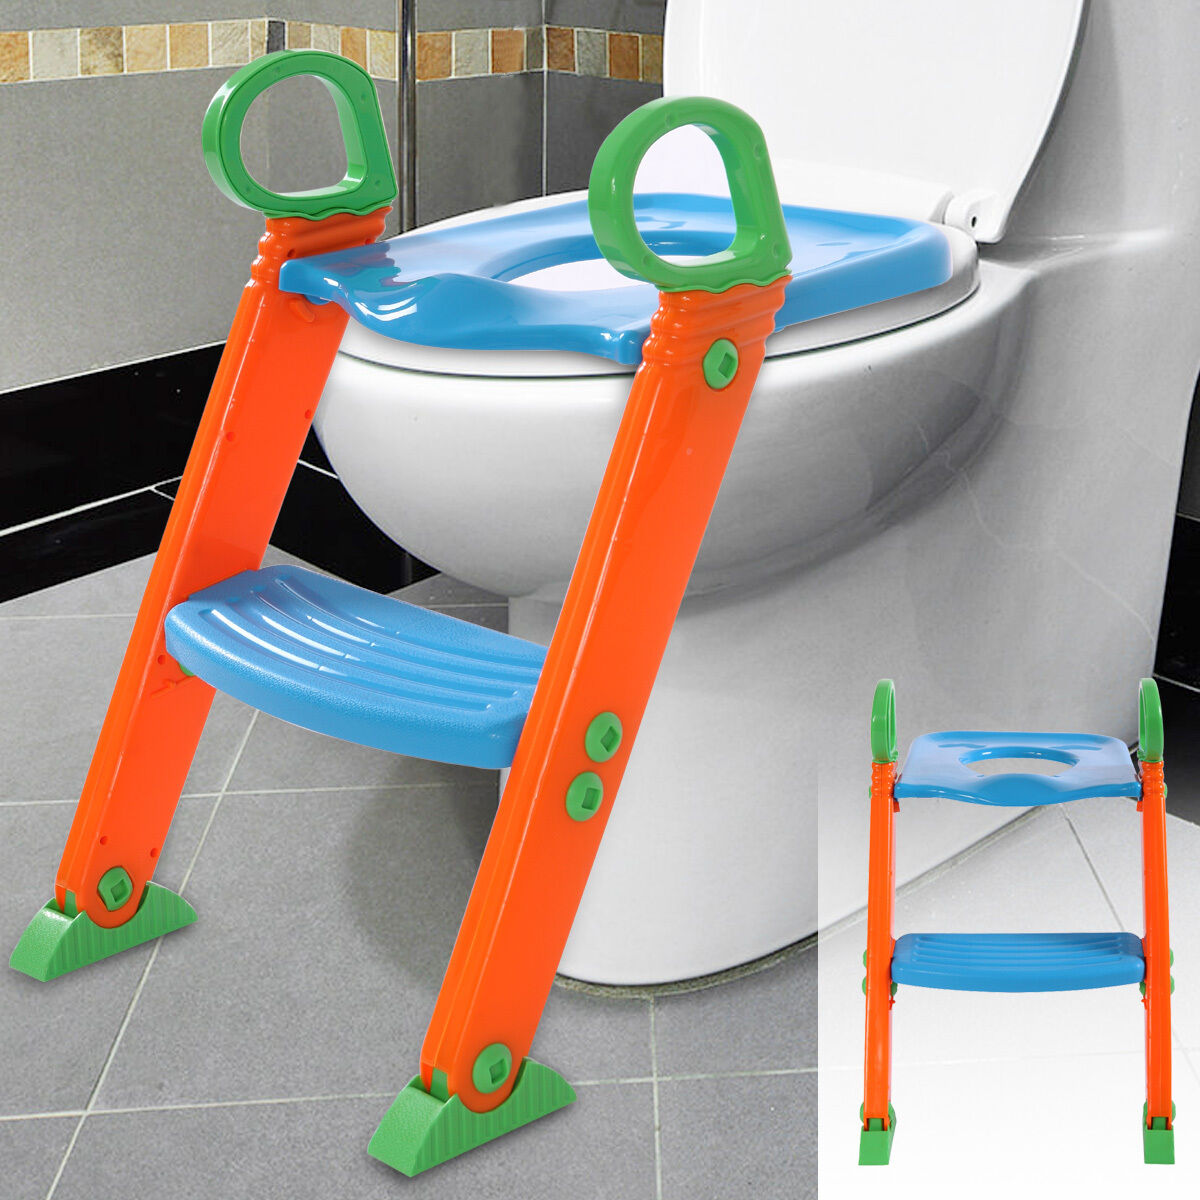 potty trainer toilet seat chair kids toddler with ladder step up training stool shopping ebay. Black Bedroom Furniture Sets. Home Design Ideas